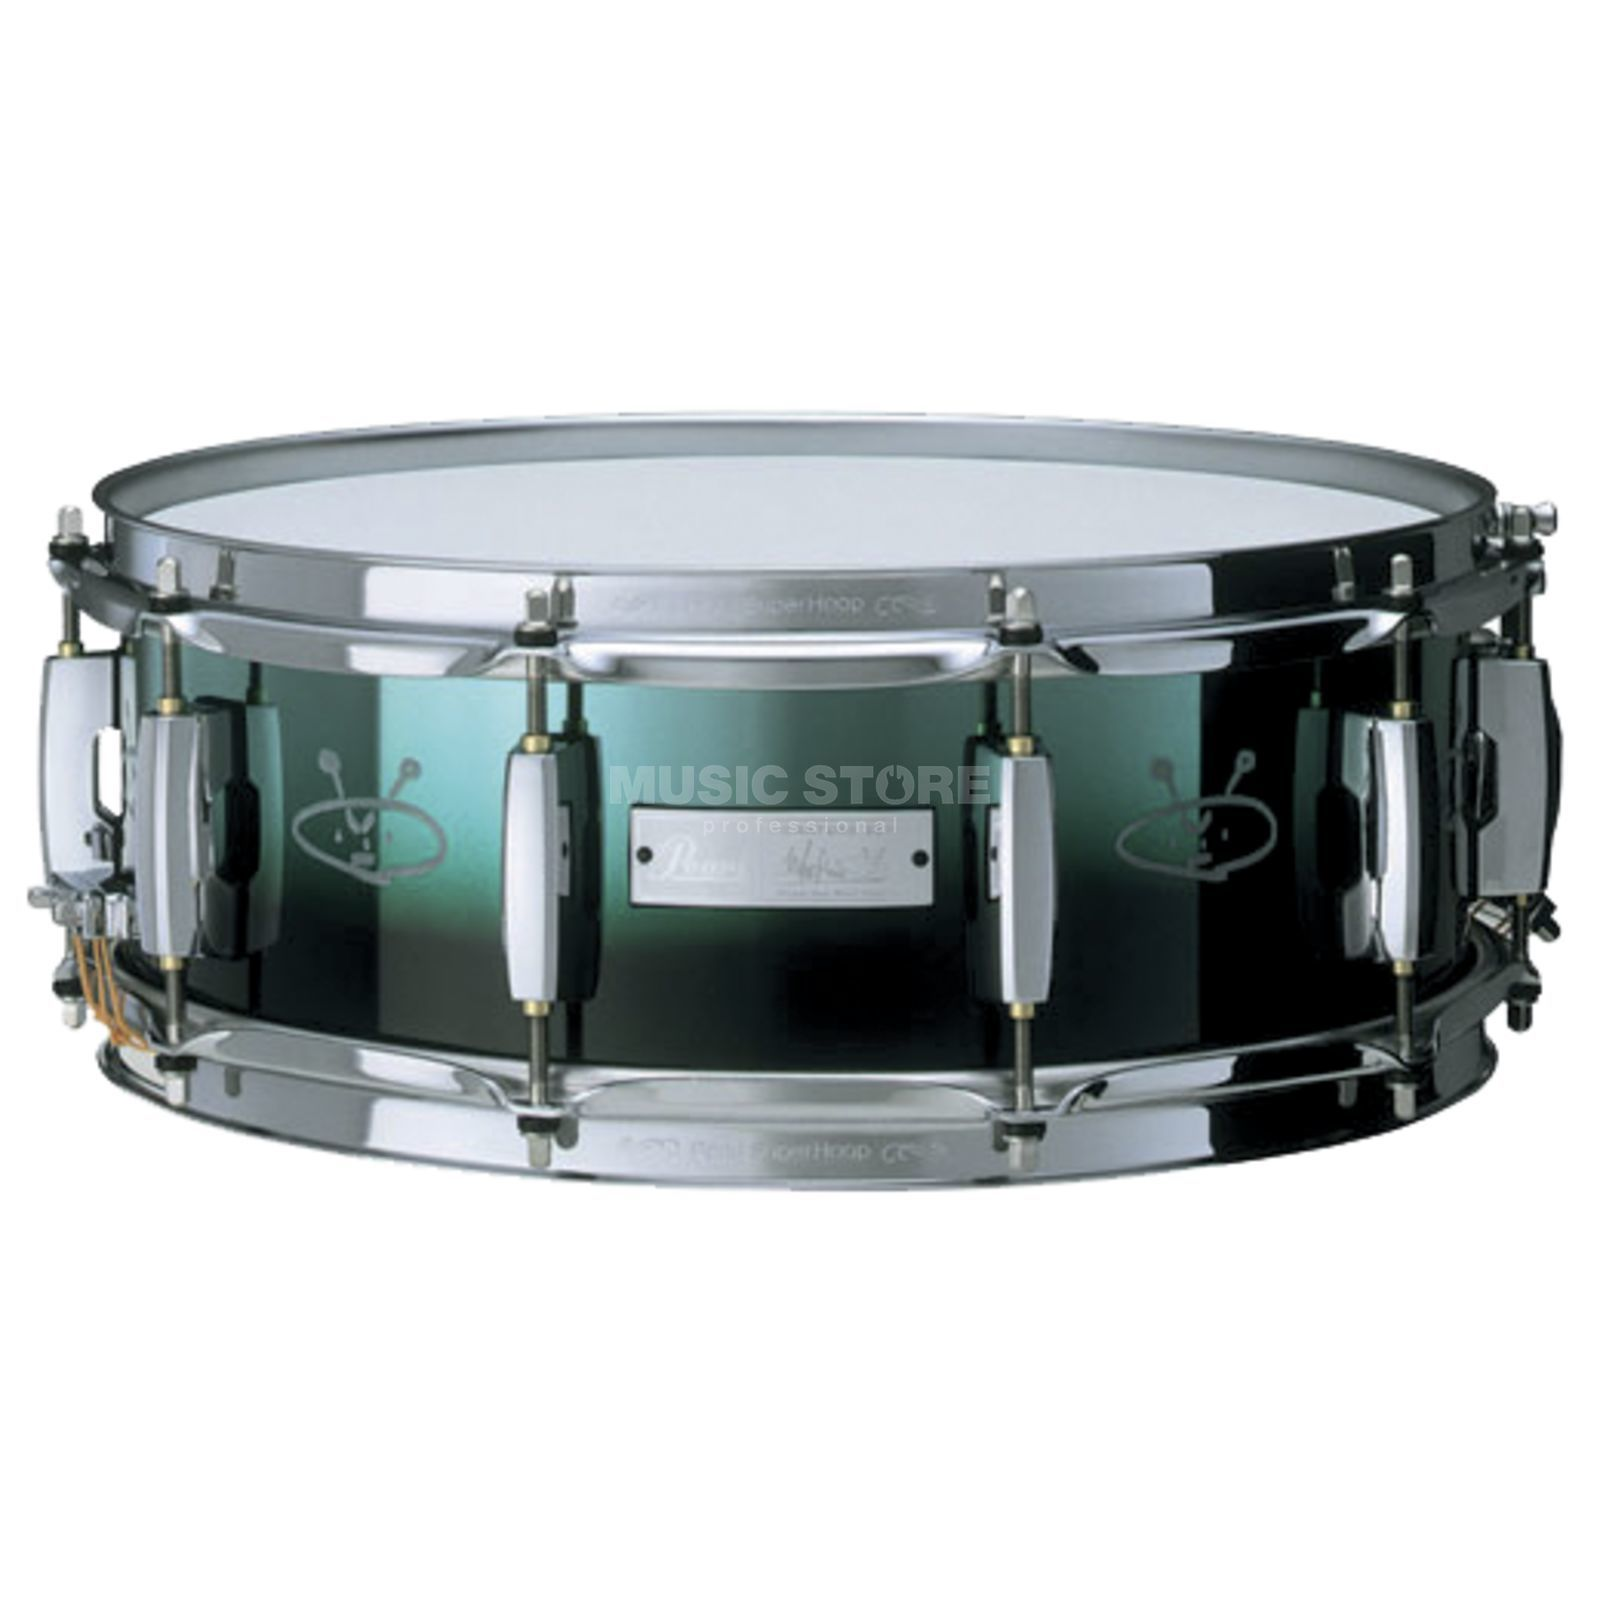 "Pearl MR1450 Morgan Rose Snare 14""x5"", Steel Produktbillede"